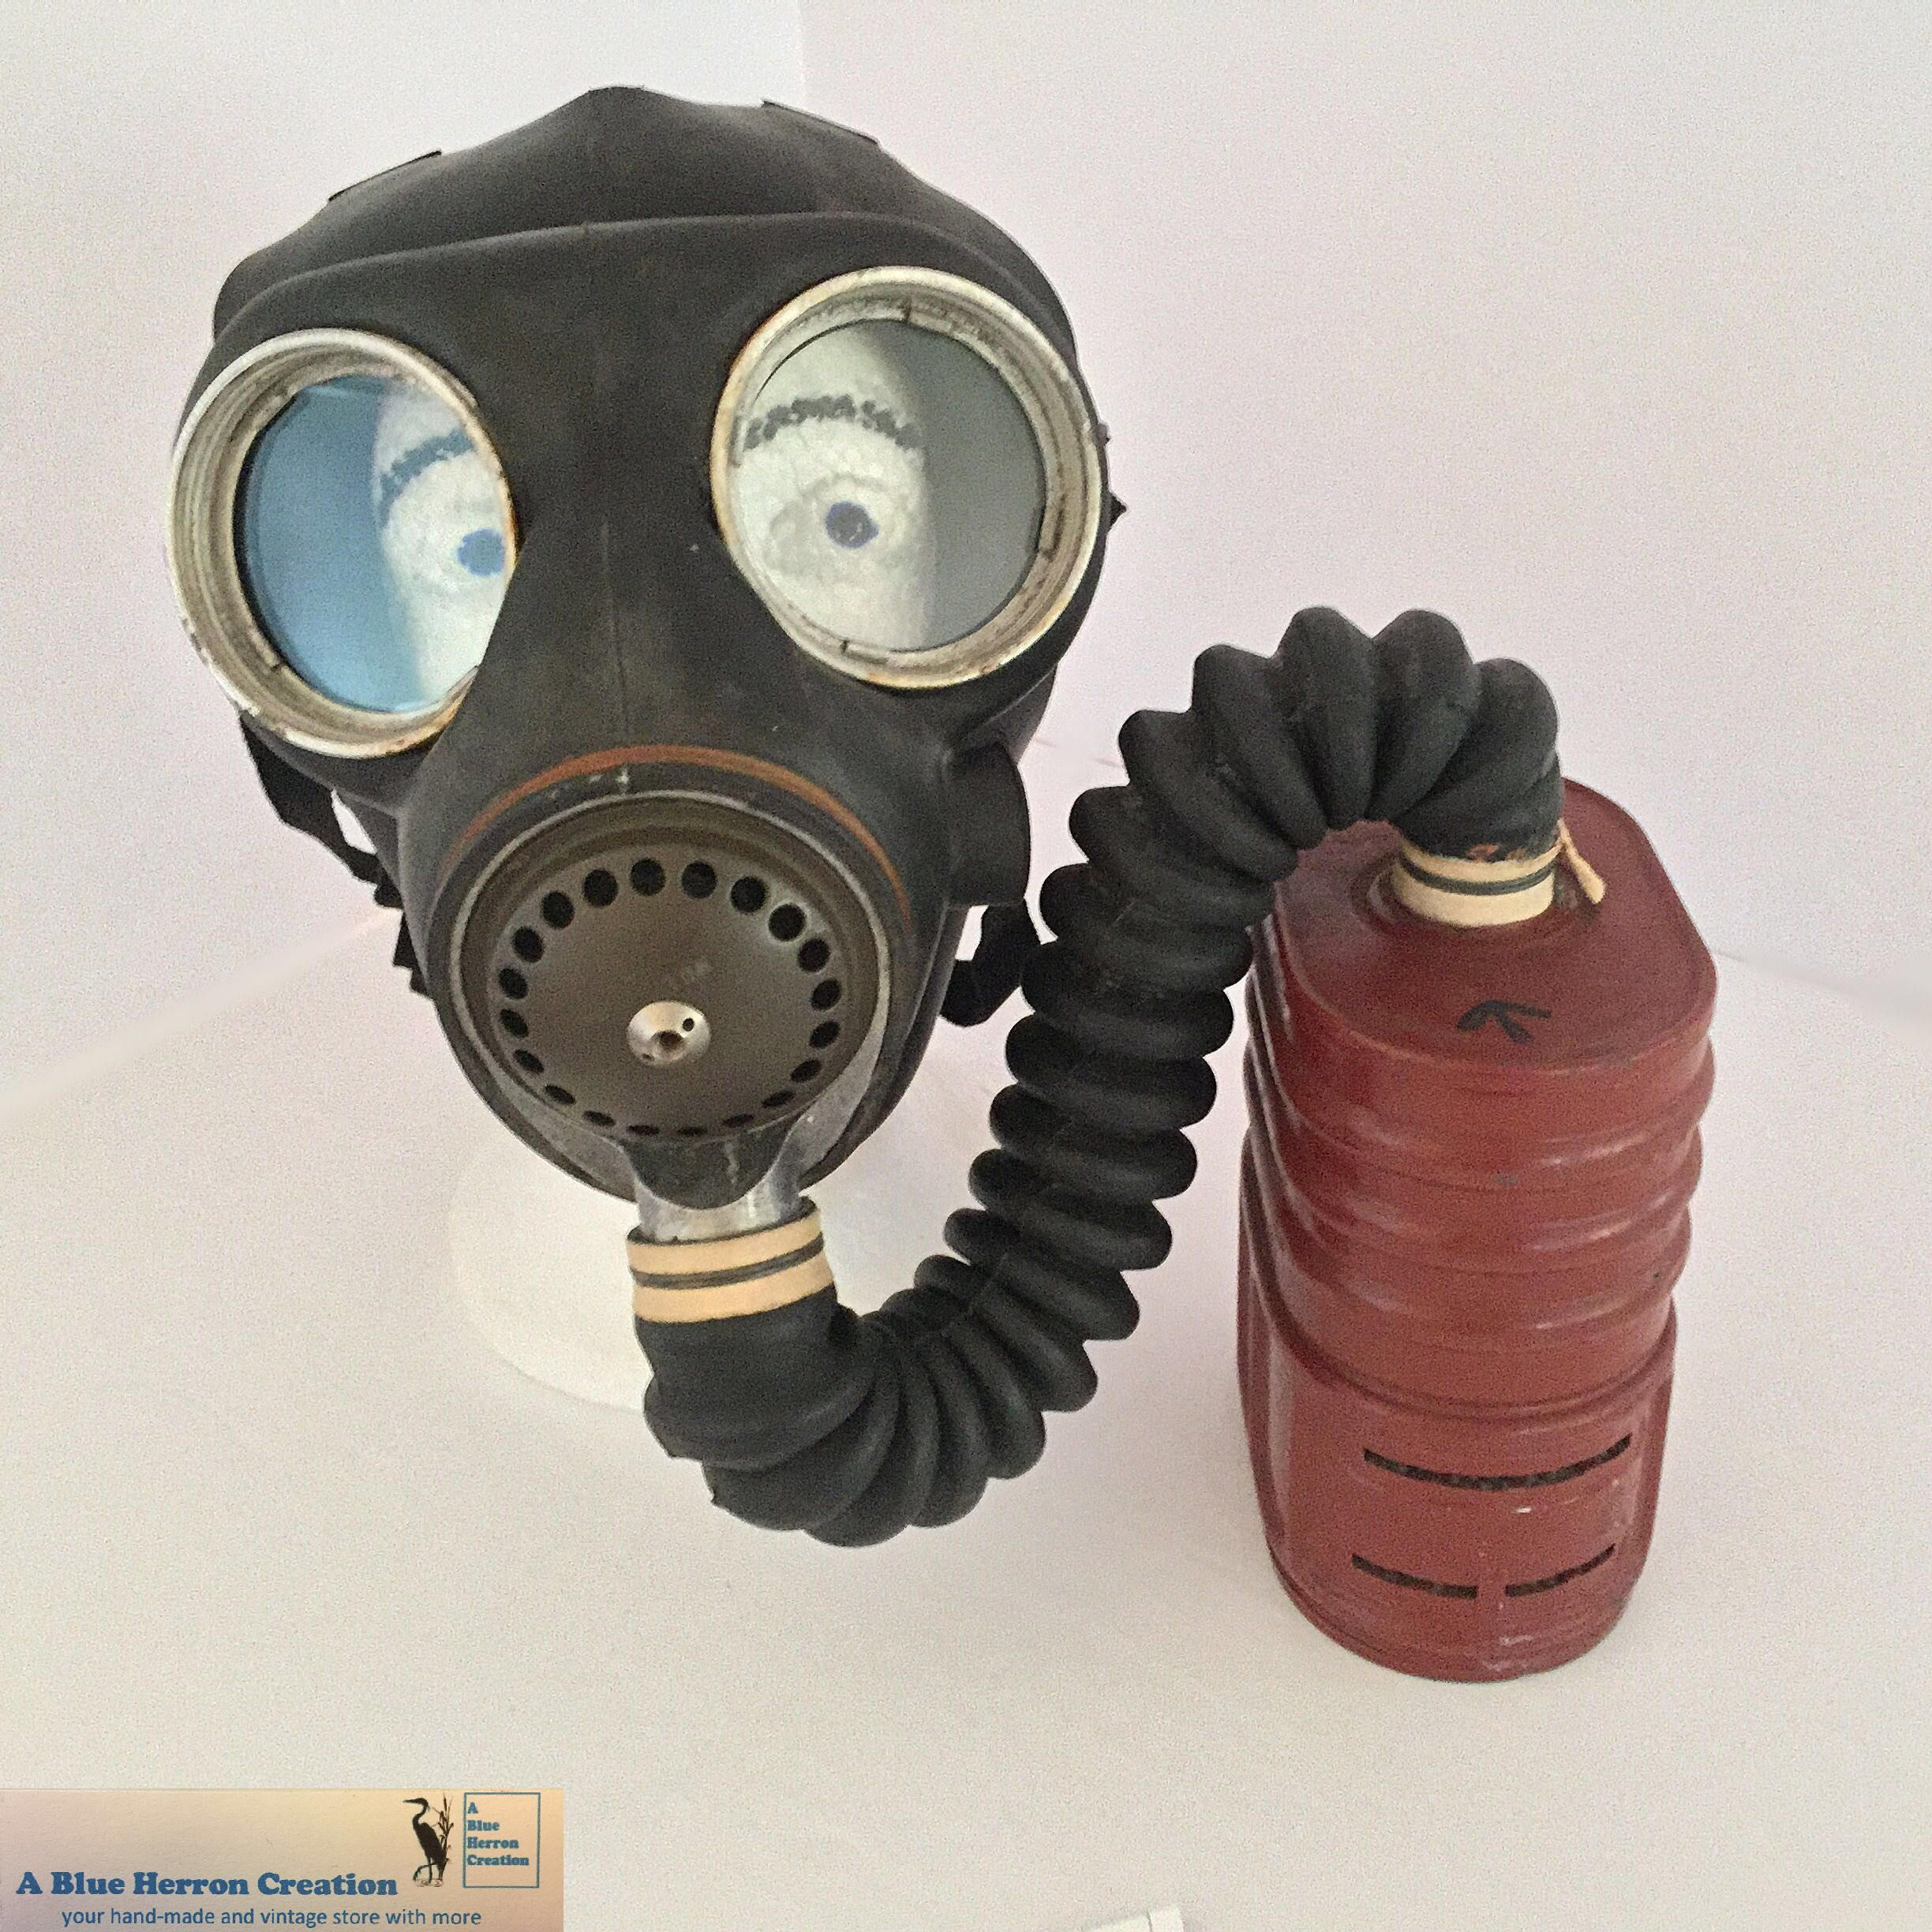 WWII British Gas Mask, Rubber Mask, Coiled tubing & Red